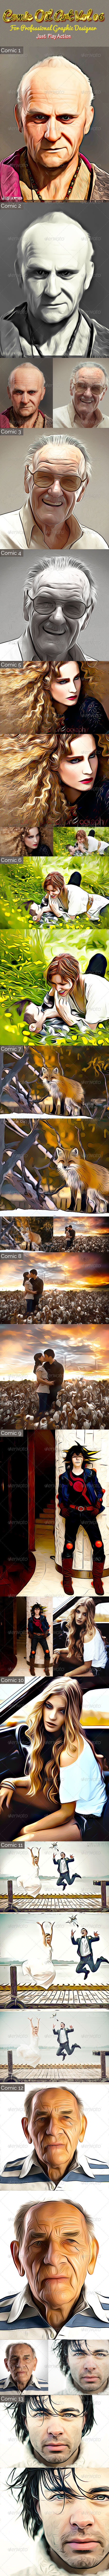 GraphicRiver Comic Oil Art Vol 06 8375179